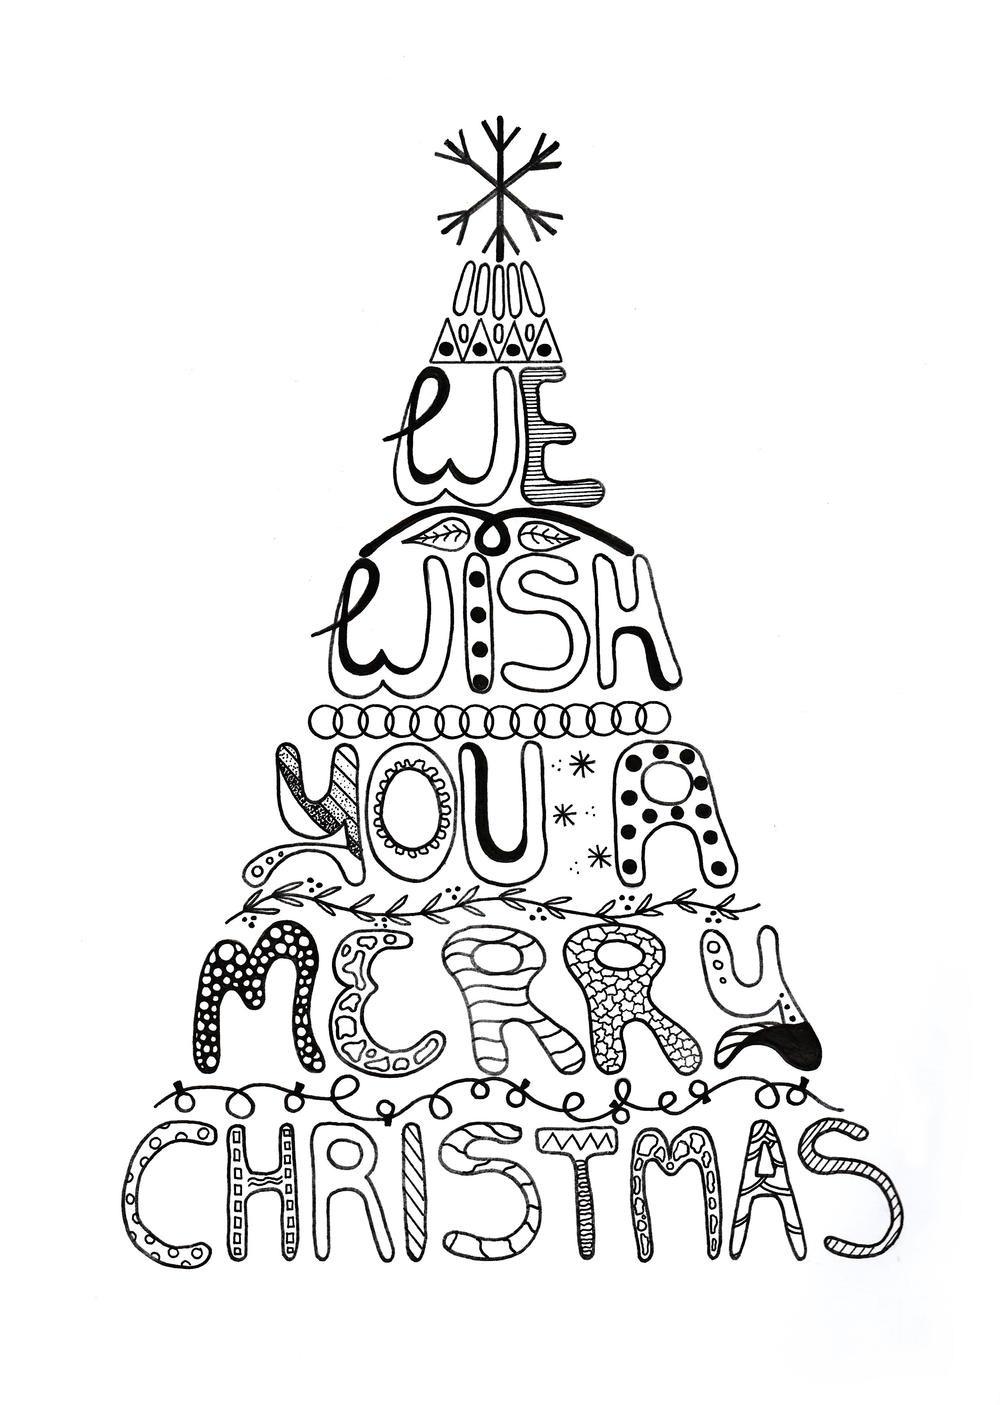 Merry Christmas Adult Coloring Page   AllFreePaperCrafts.com   christmas coloring pages for adults